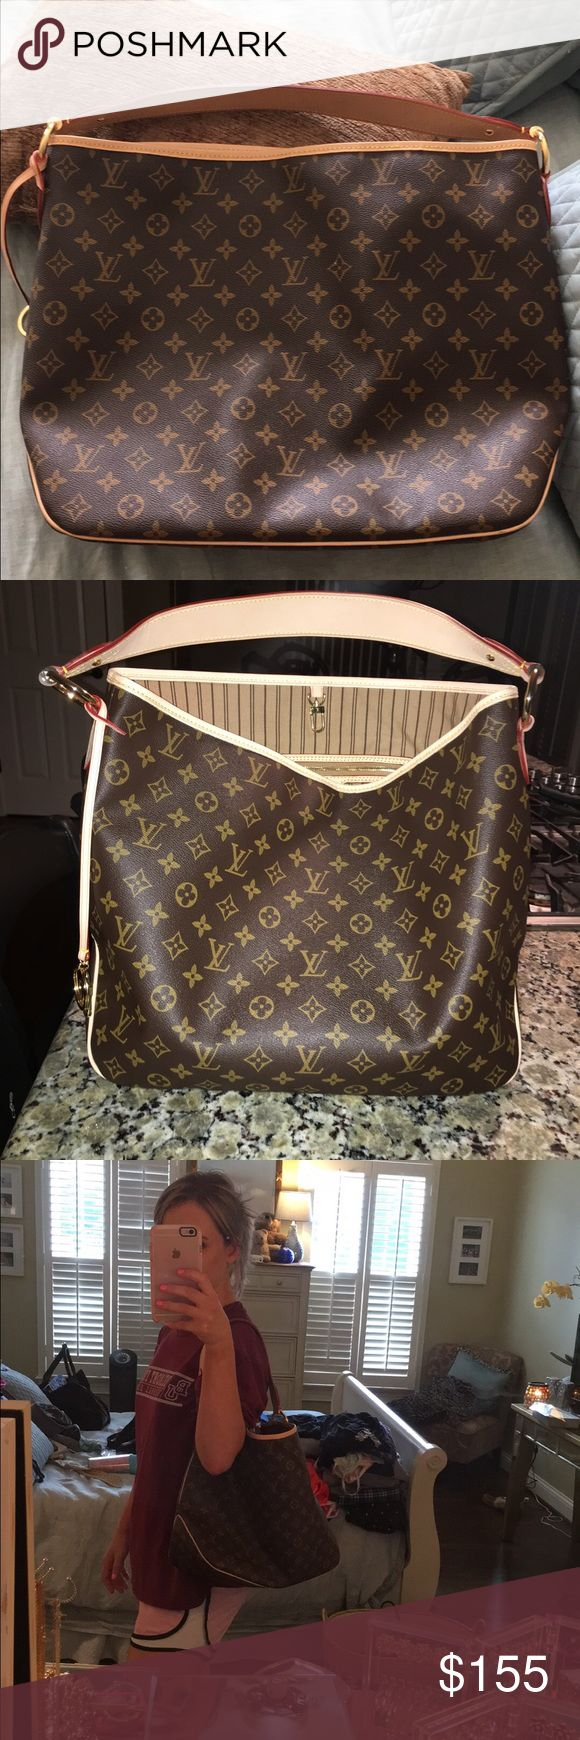 Louis Vuitton Delightful MM Starting to patina purchased in NY Bags Shoulder Bags